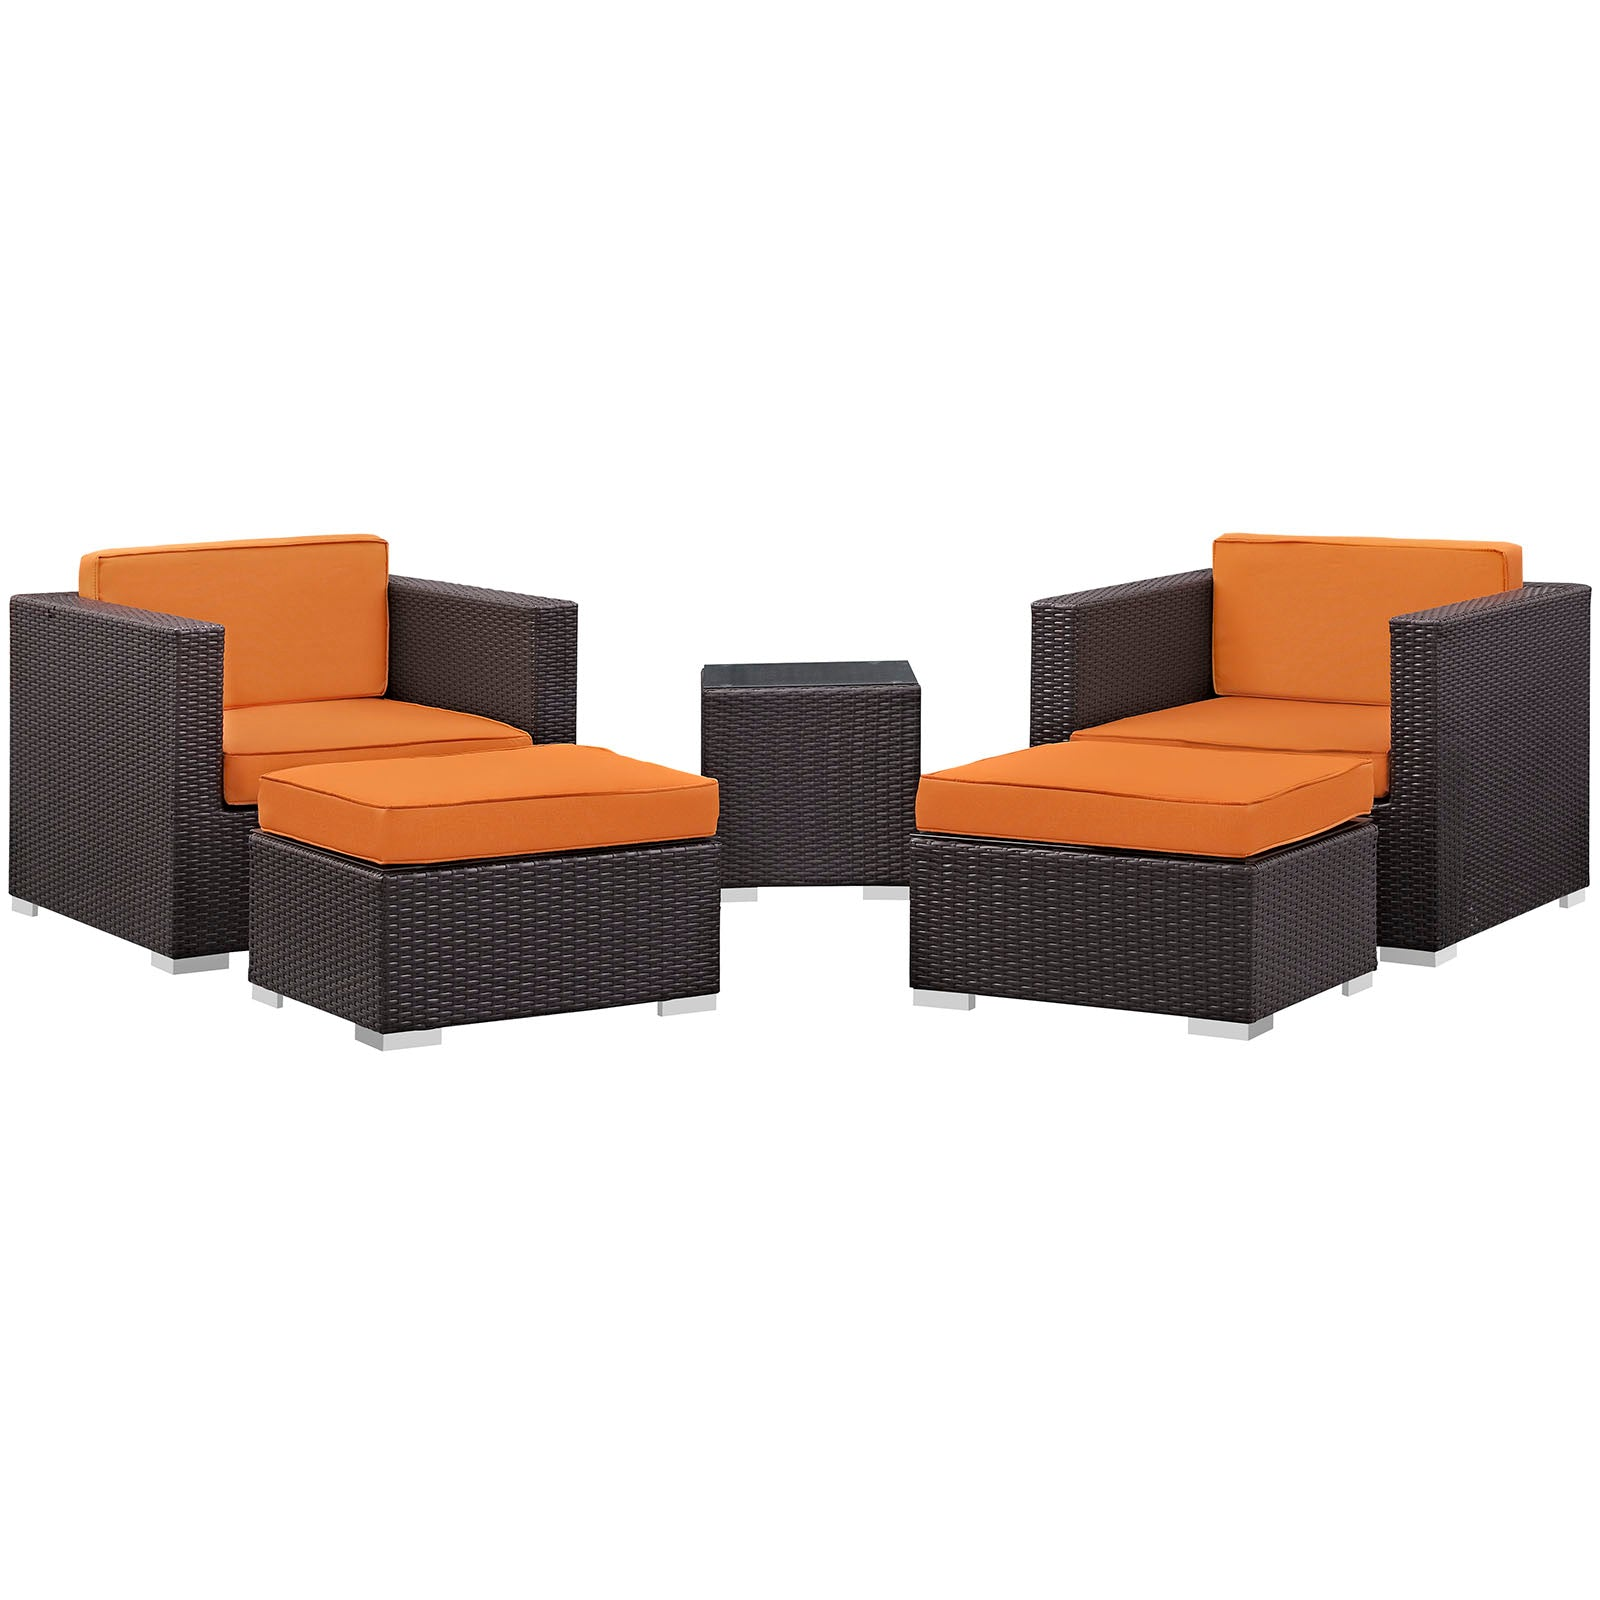 Modway Convene 5 Piece Outdoor Patio Sectional Set in Espresso Orange